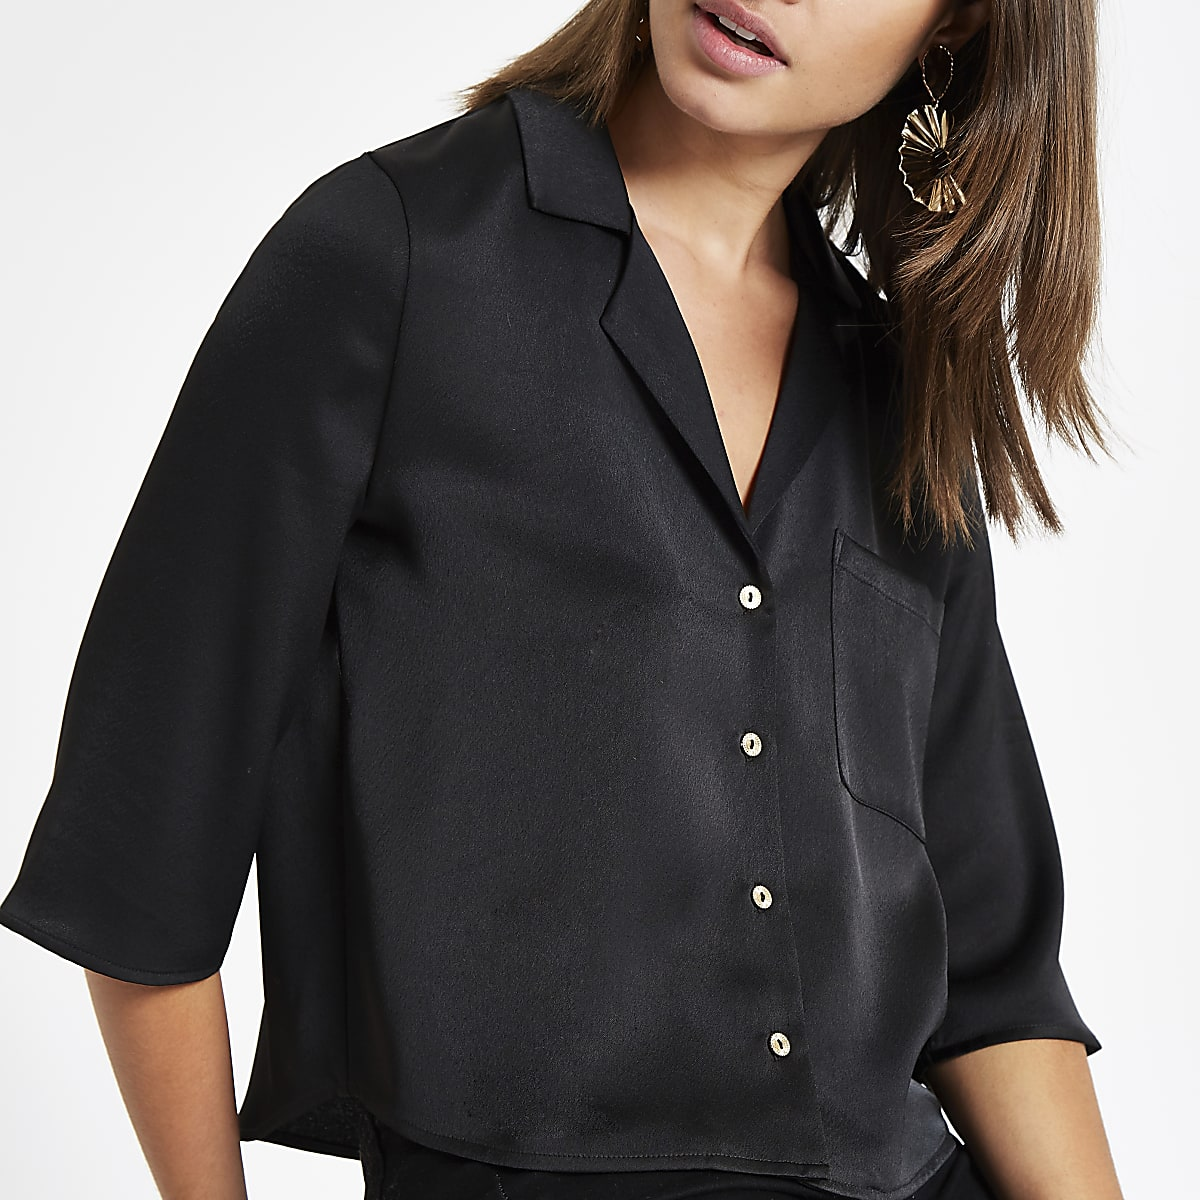 Black button crop shirt